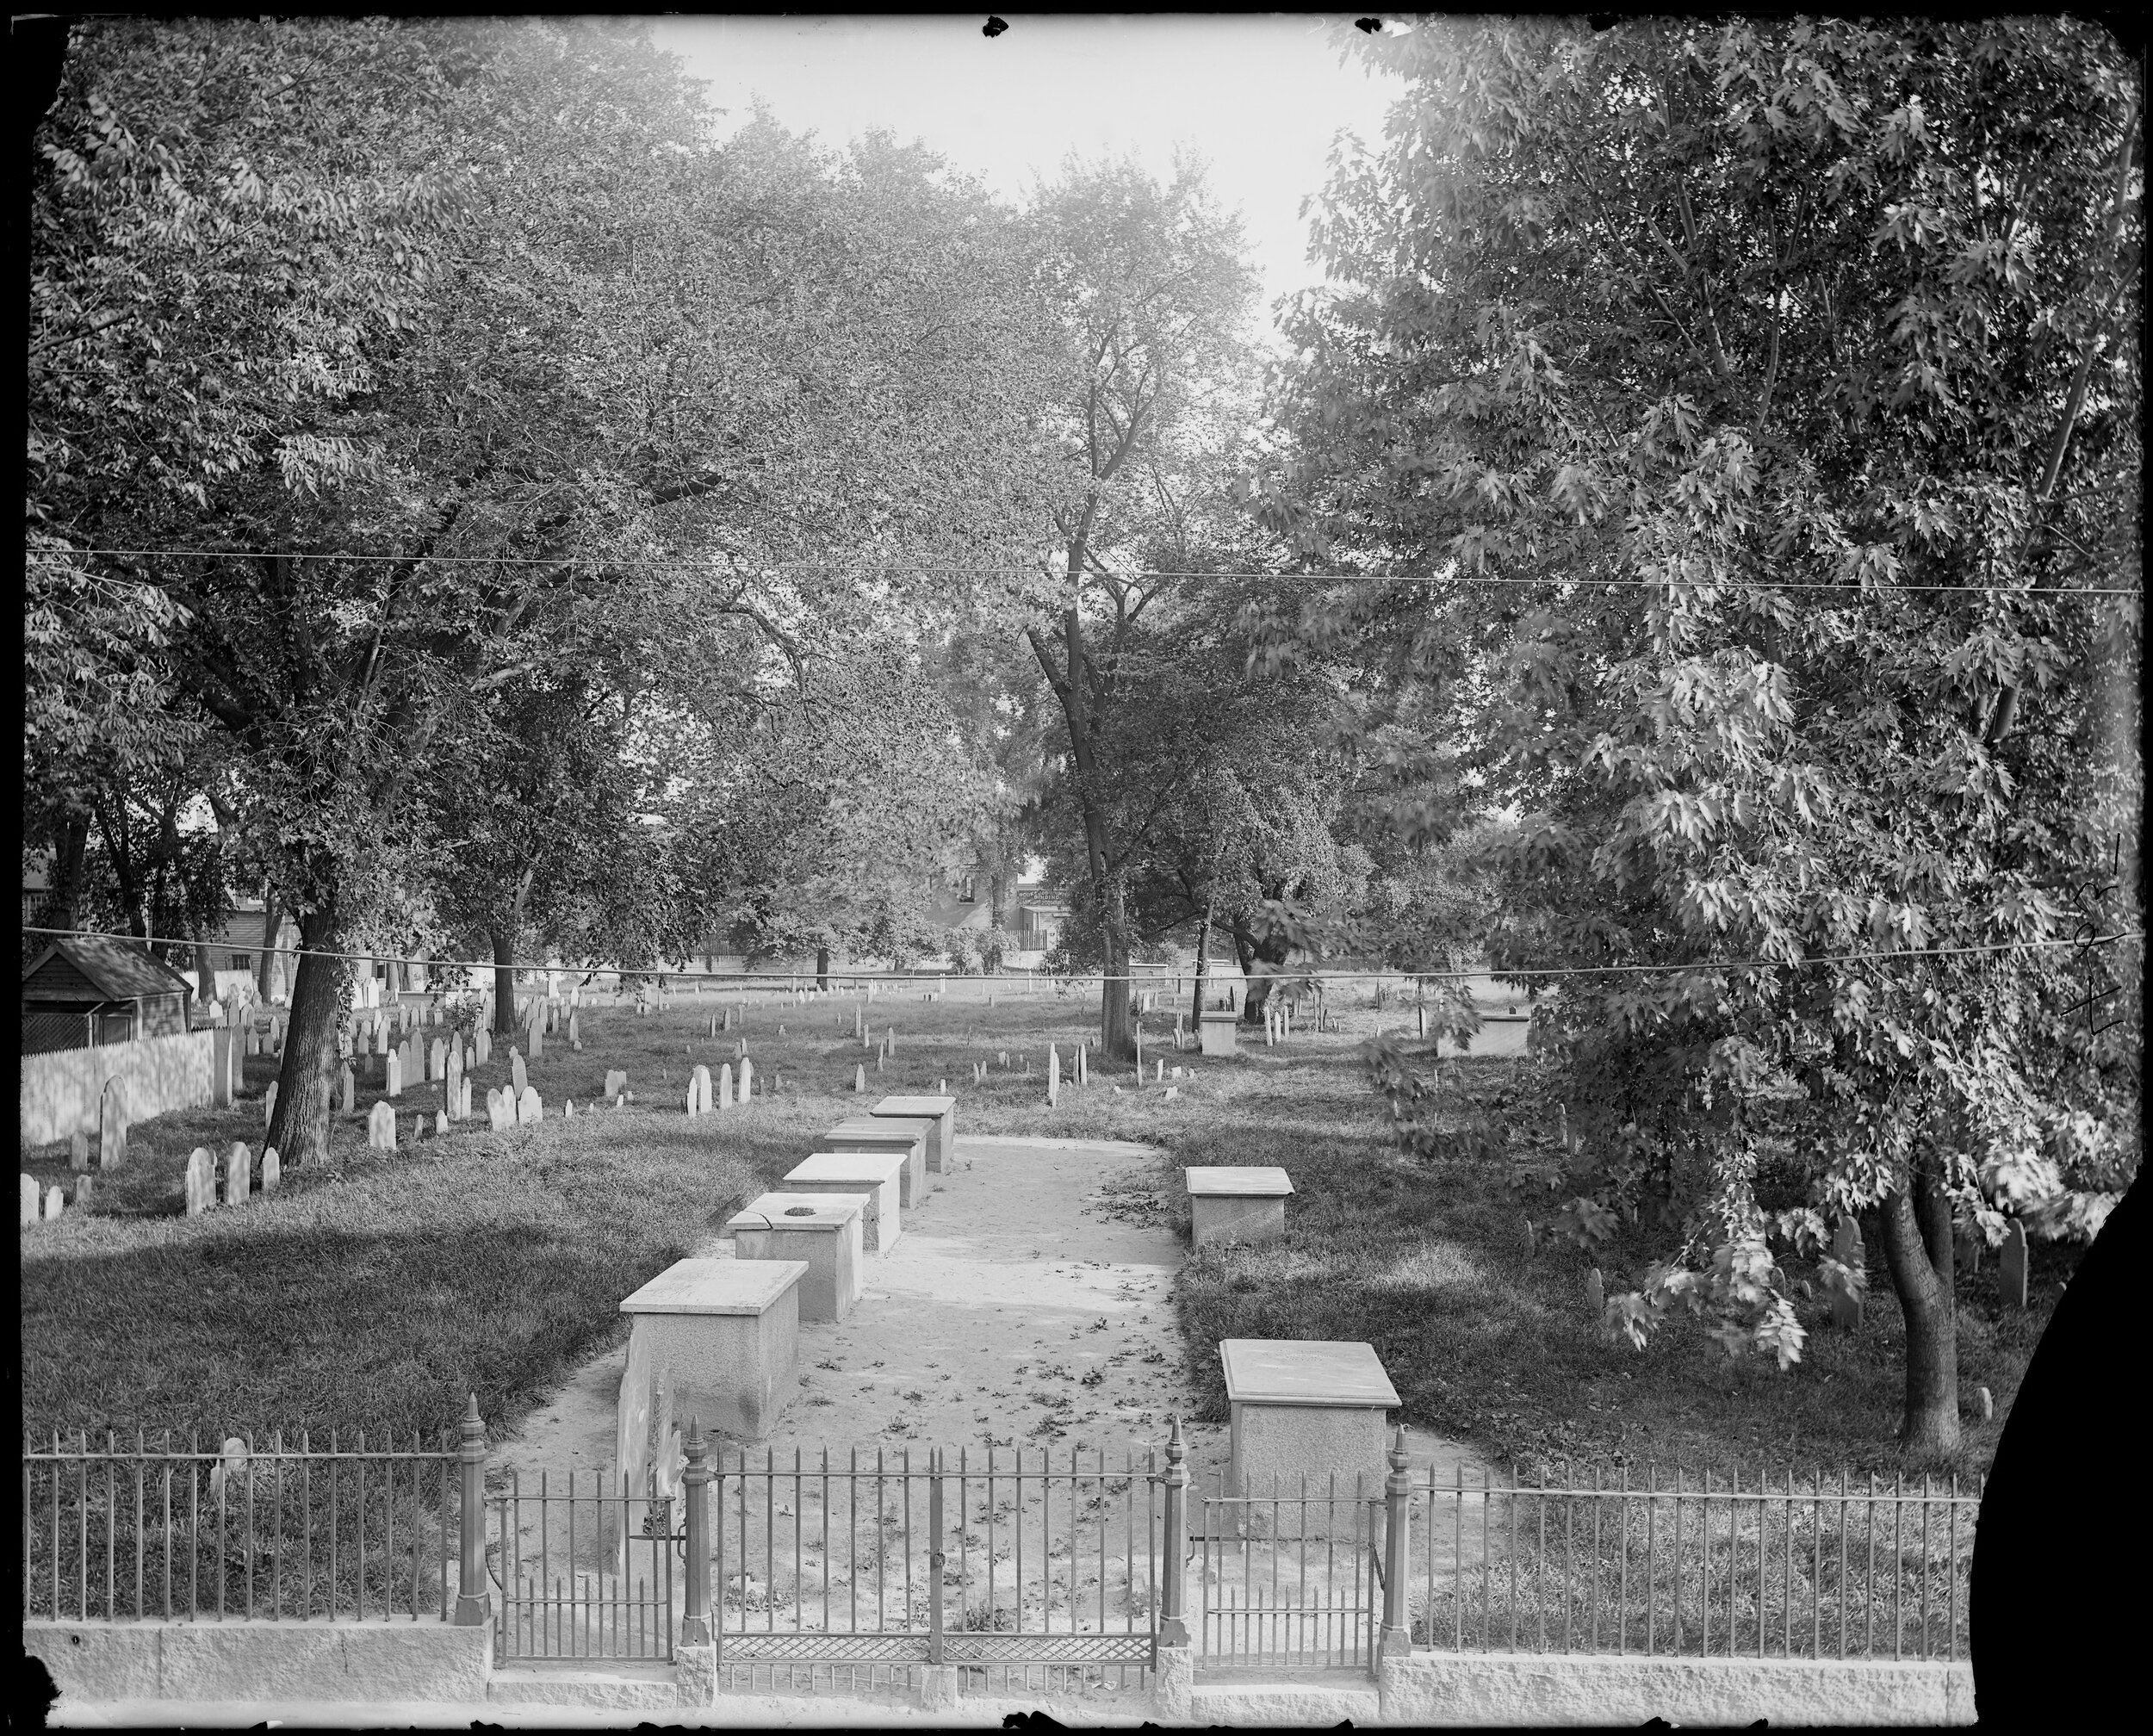 CHARTER STREET CEMETERY ENTRANCE    Frank Cousins, [Monuments, Salem, Charter Street Cemetery], [1864-1914], Frank Cousins Collection of Glass Plate Negatives, Courtesy of Phillips Library, Peabody Essex Museum, Salem, MA.